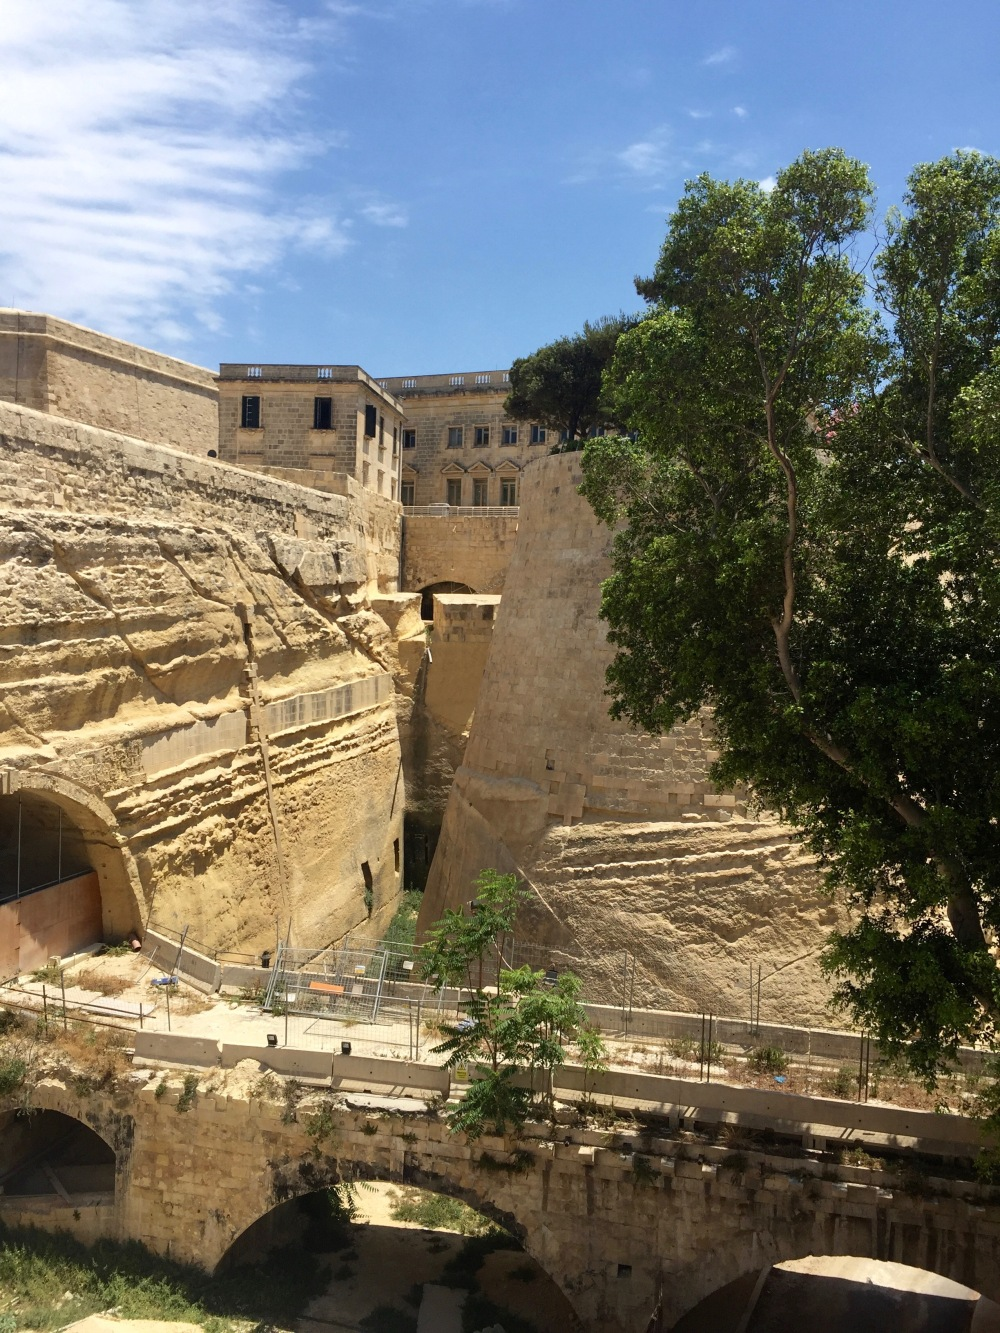 Meandering around Valletta